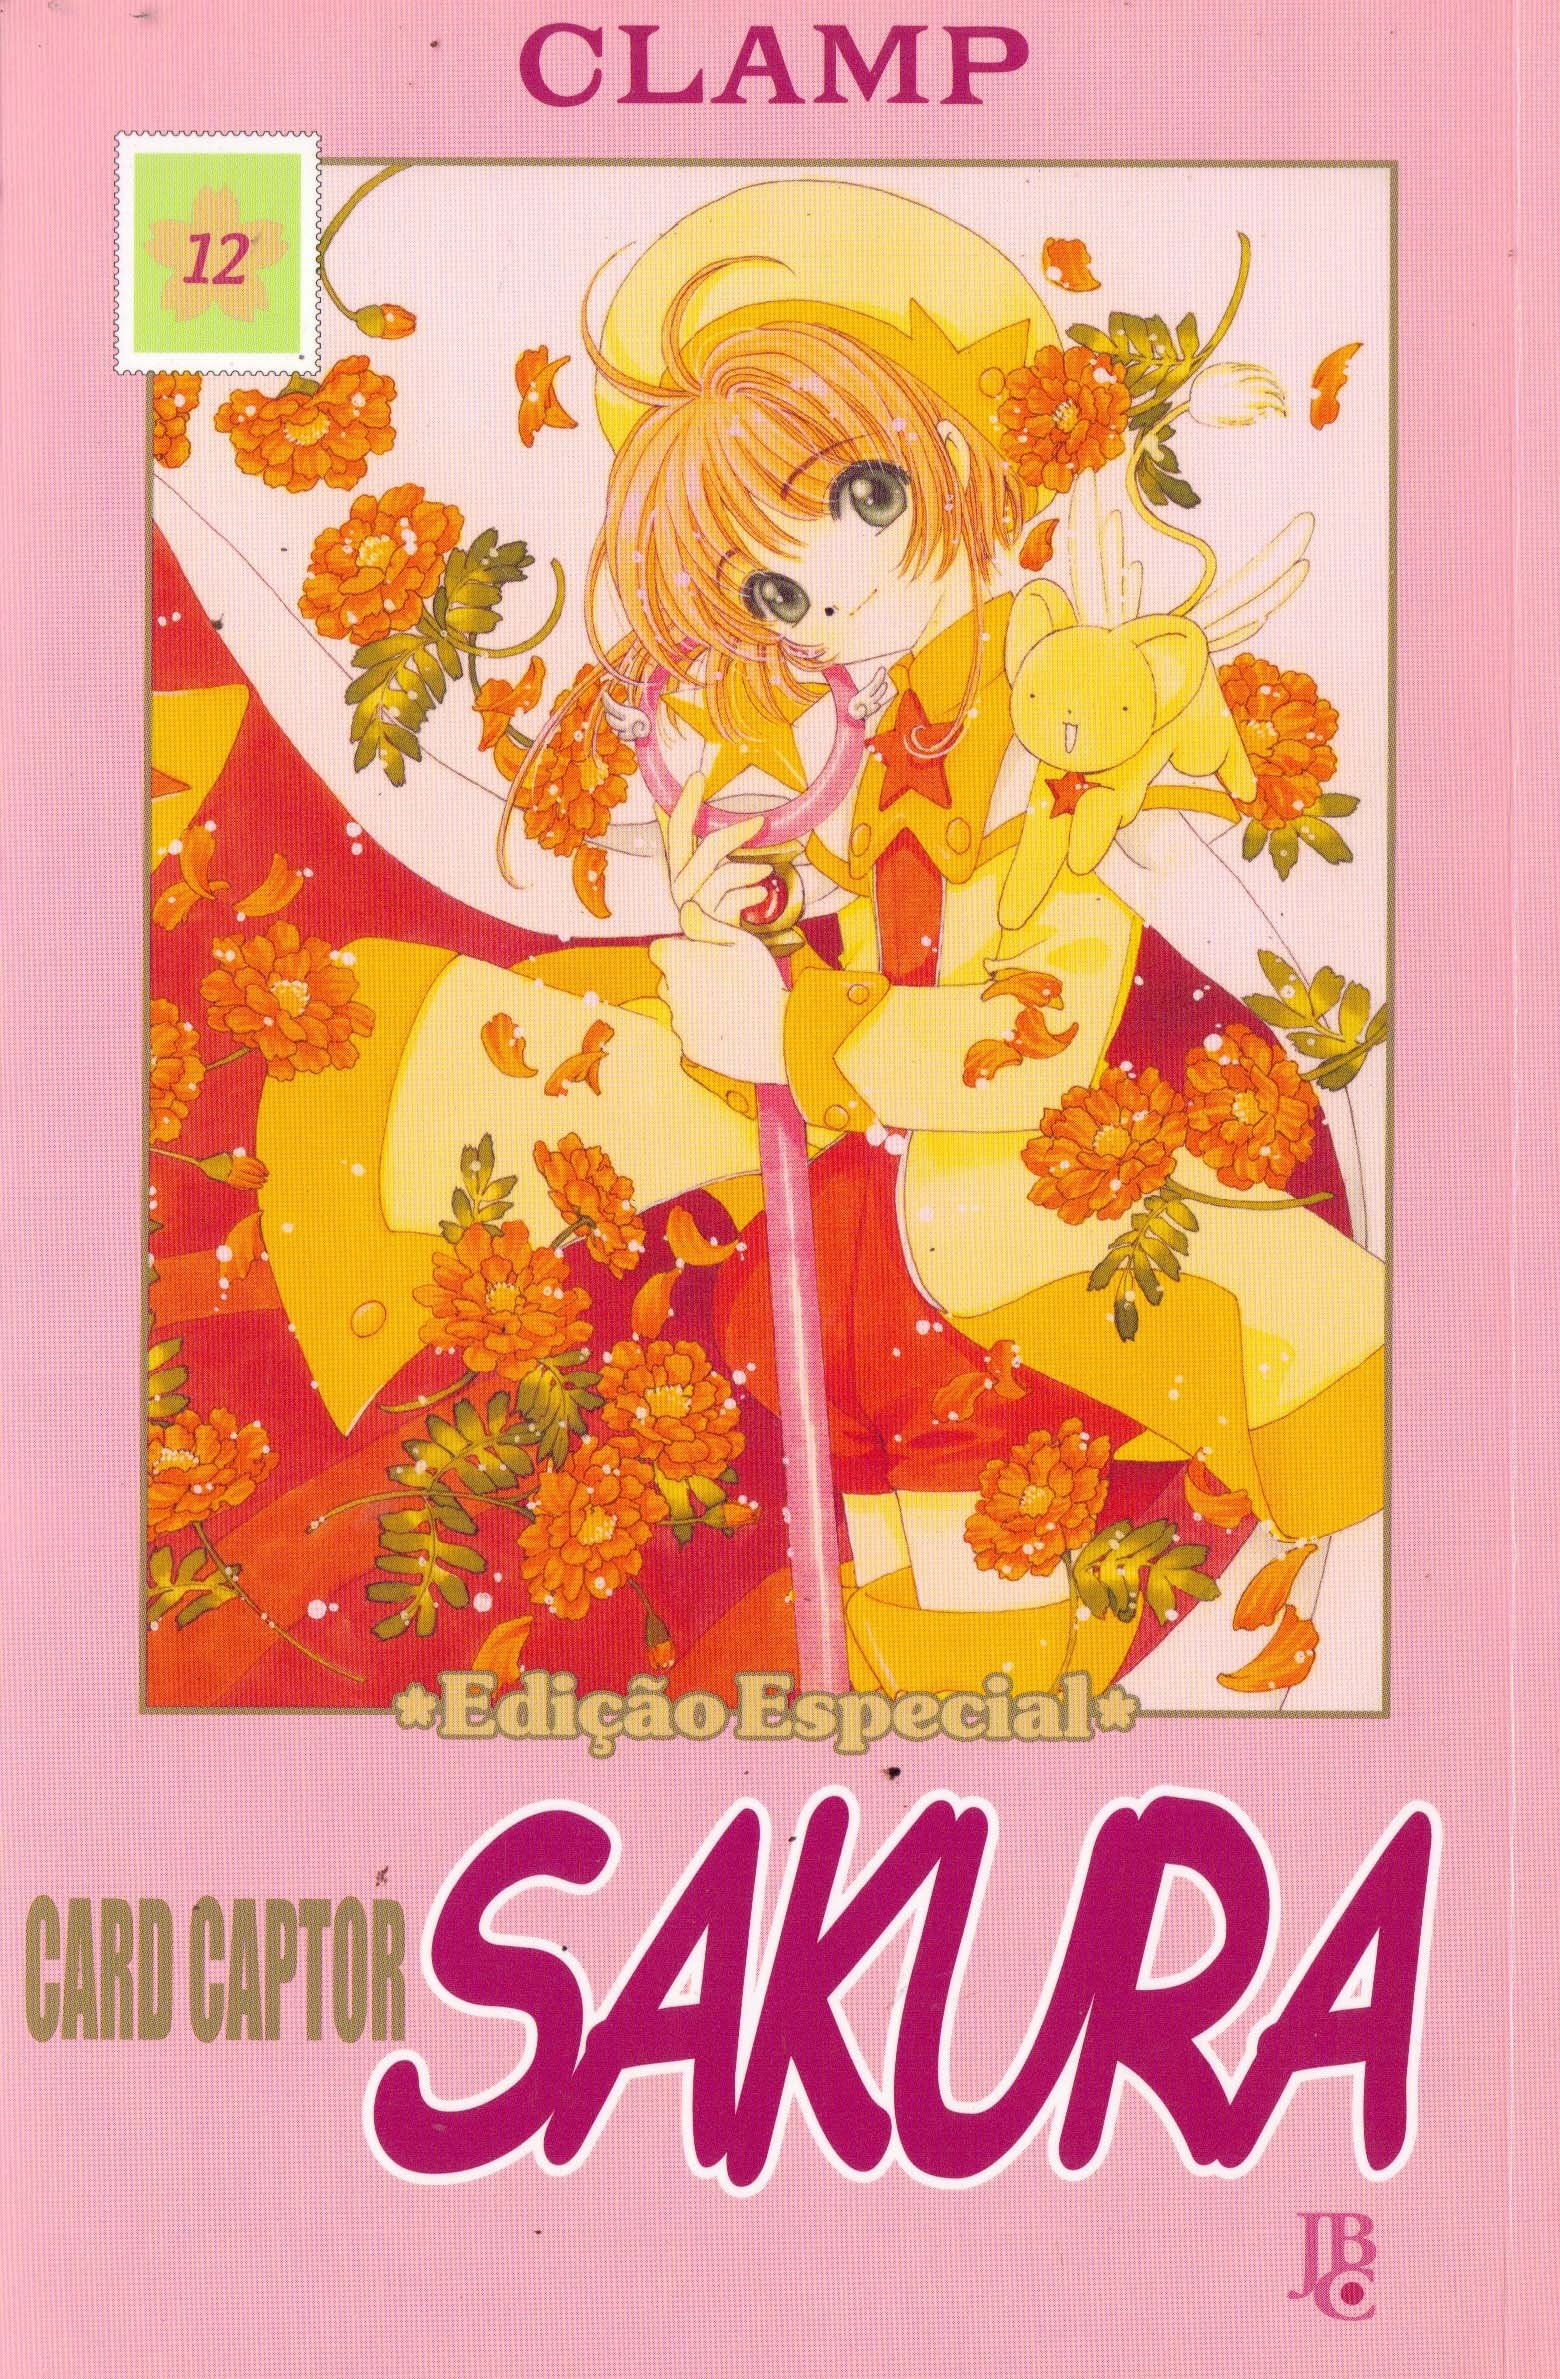 Card Captor Sakura- Volume 12: Amazon.es: Vários Autores: Libros